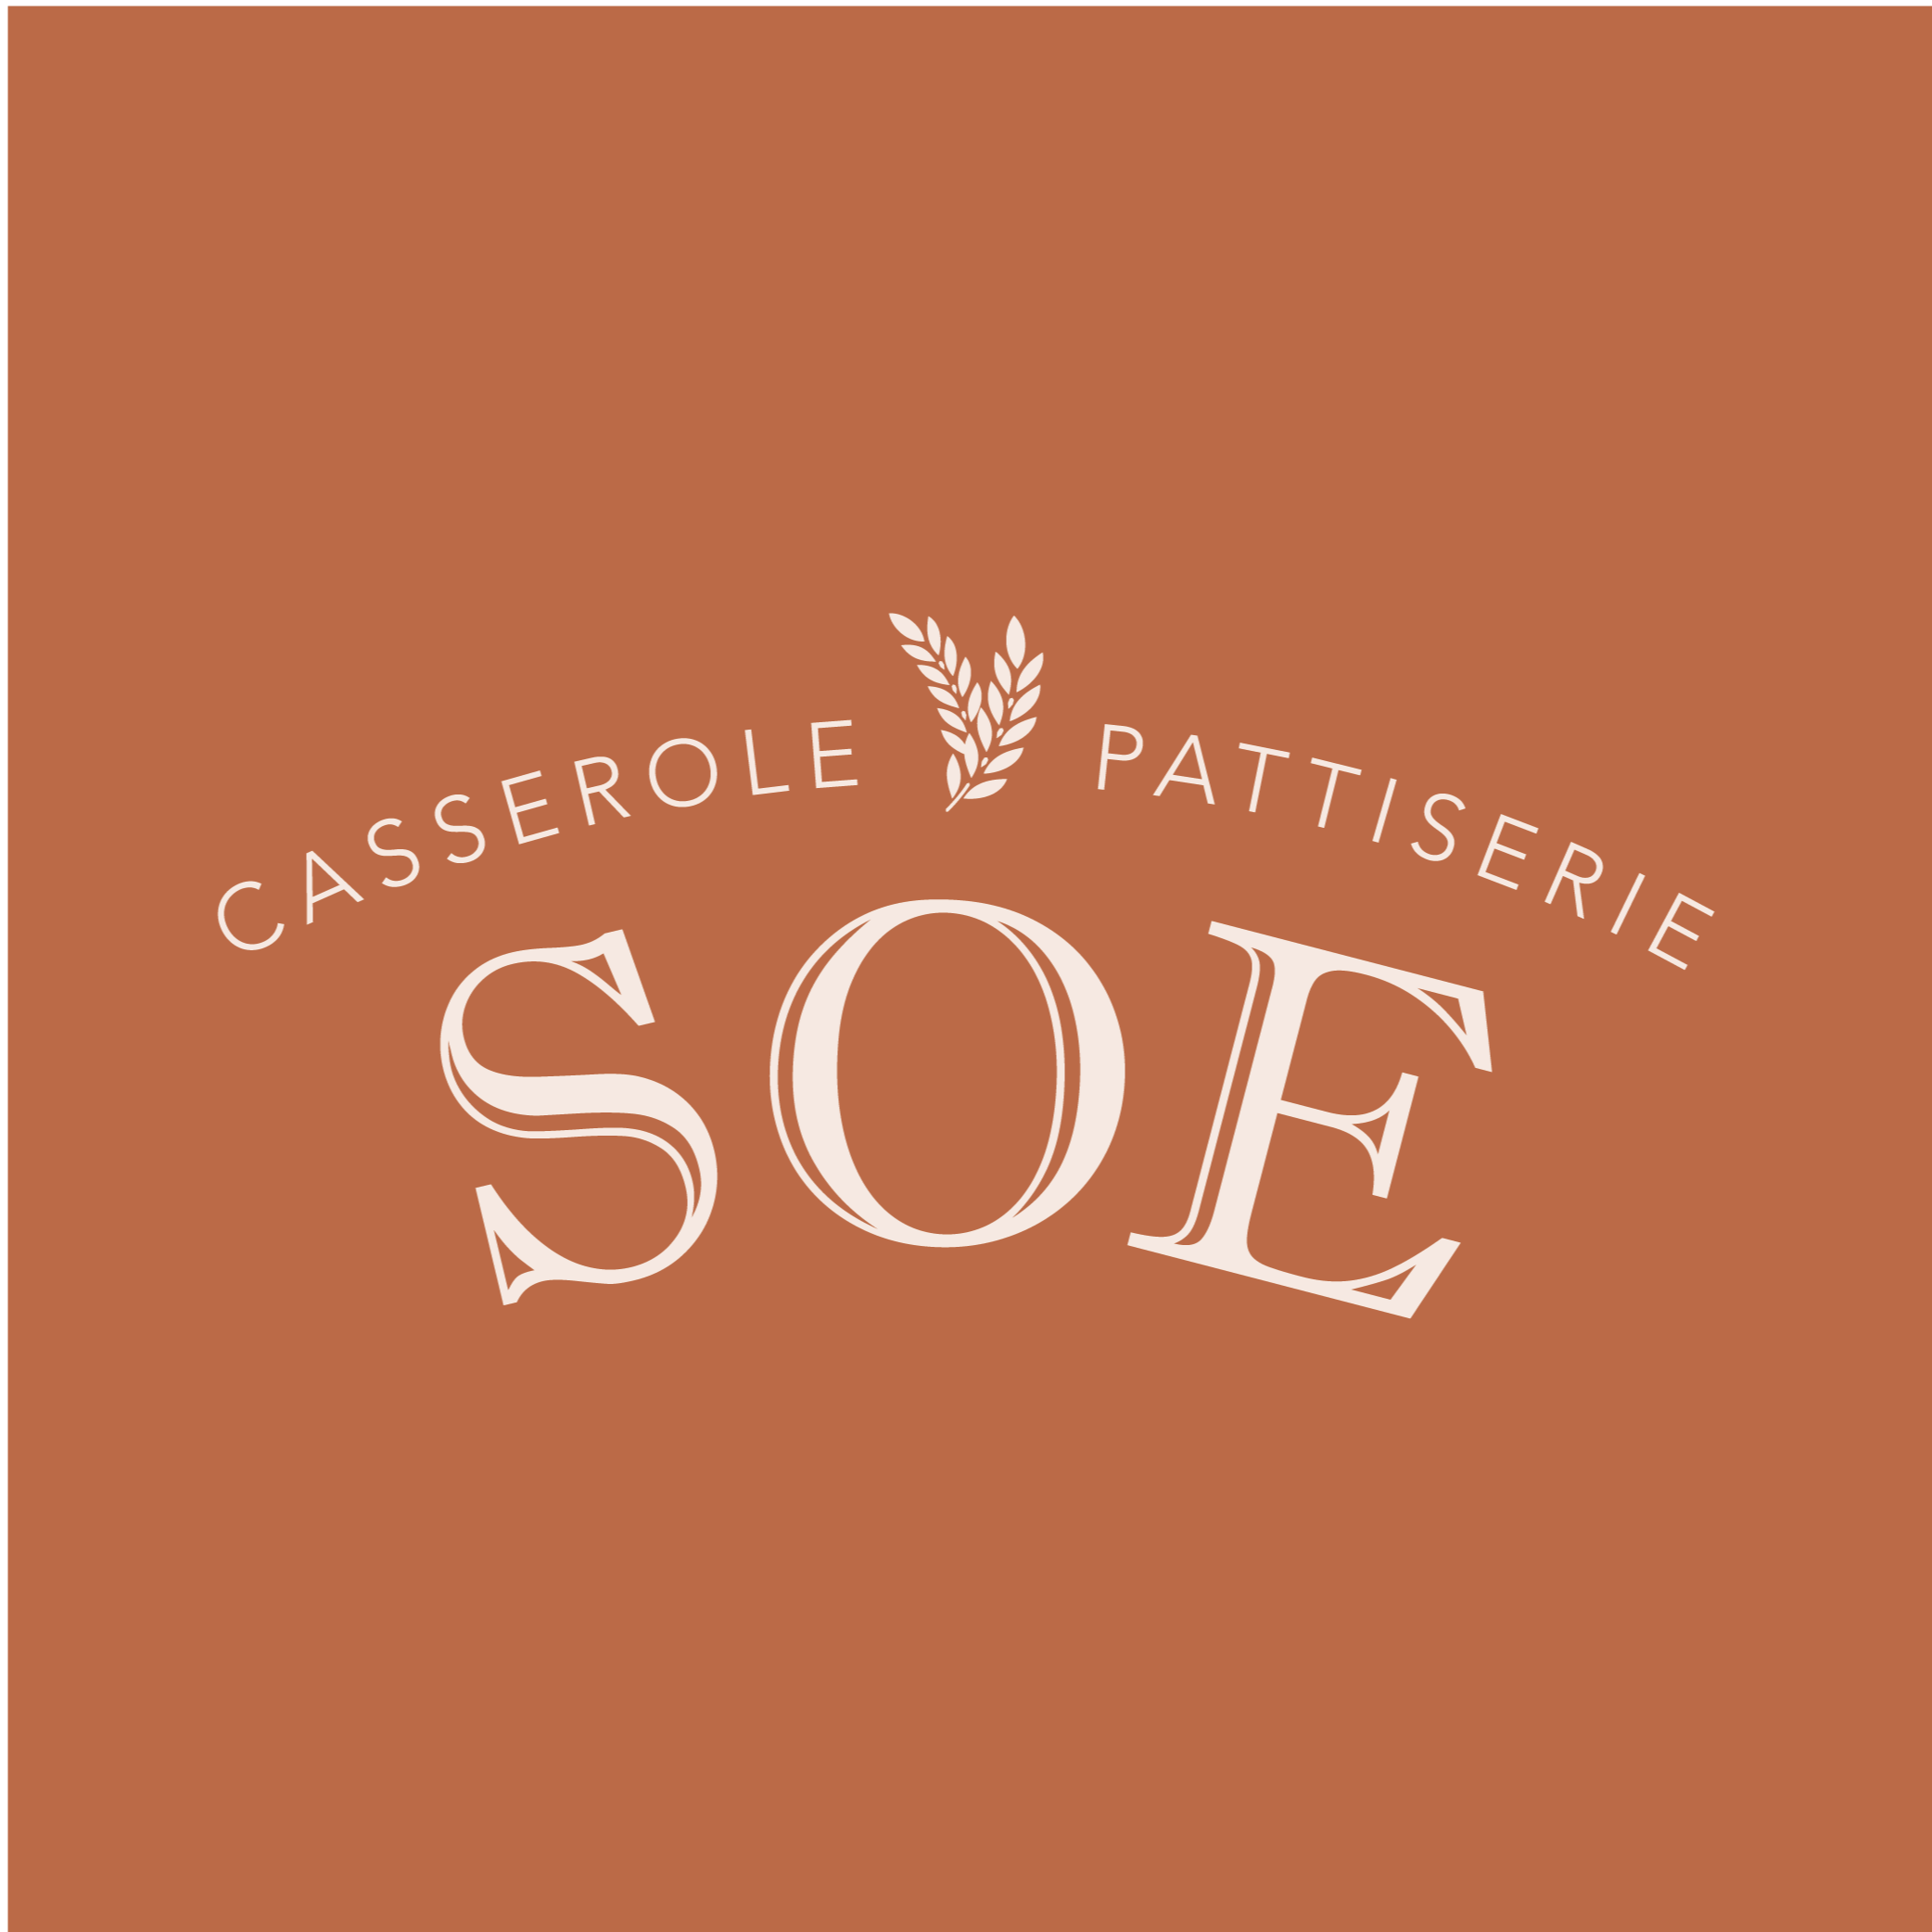 Soe's Casserole and Patisserie